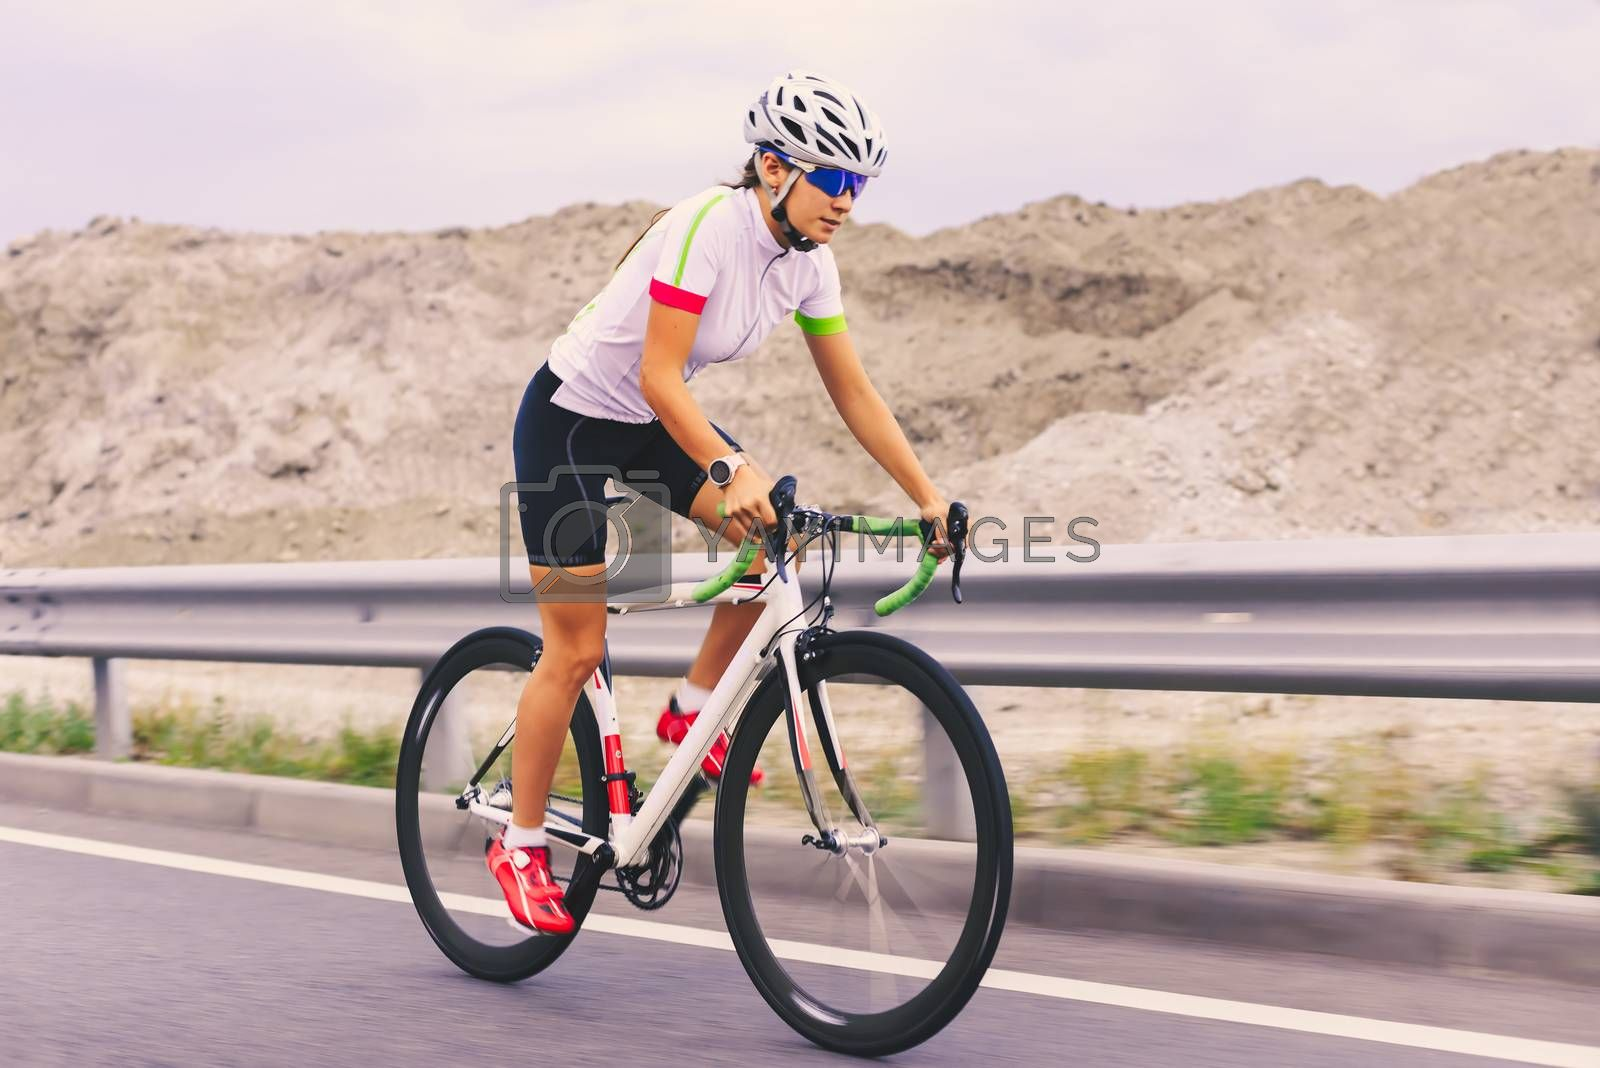 Young Woman Cyclist Riding Bike on the Road in the Mountains. Adventure, Travel, Healthy Lifestyle and Sport Concept.